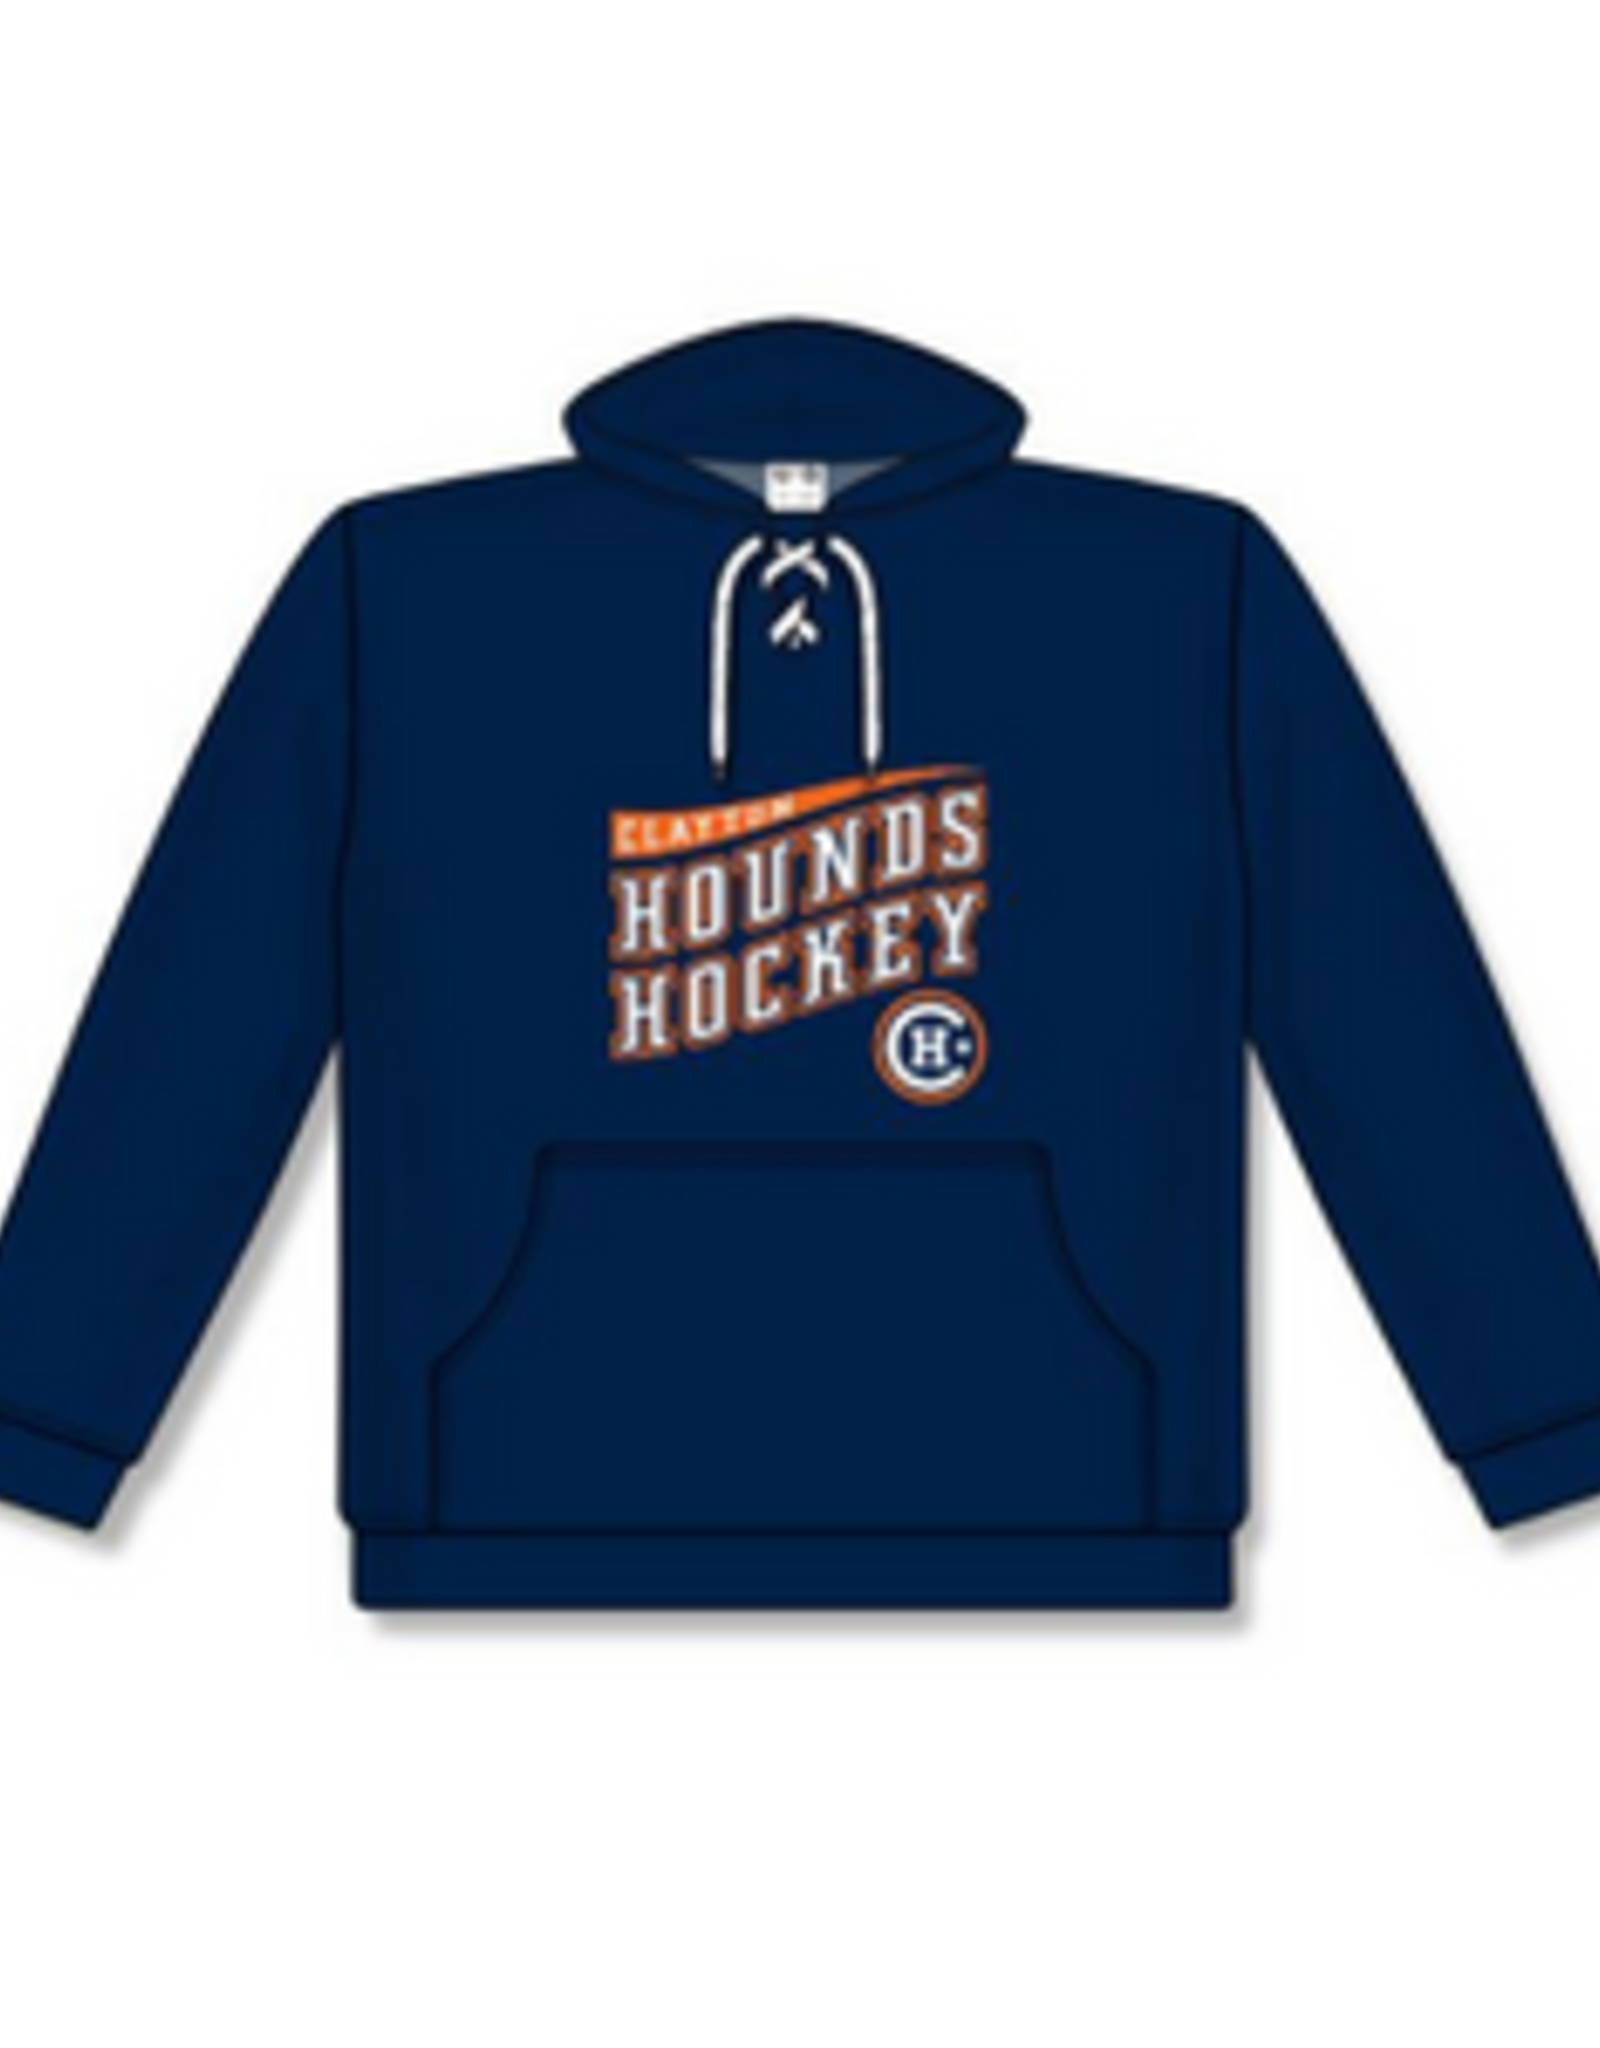 AK Clayton AK Navy Hounds Lace Up Hoodie (YOUTH)